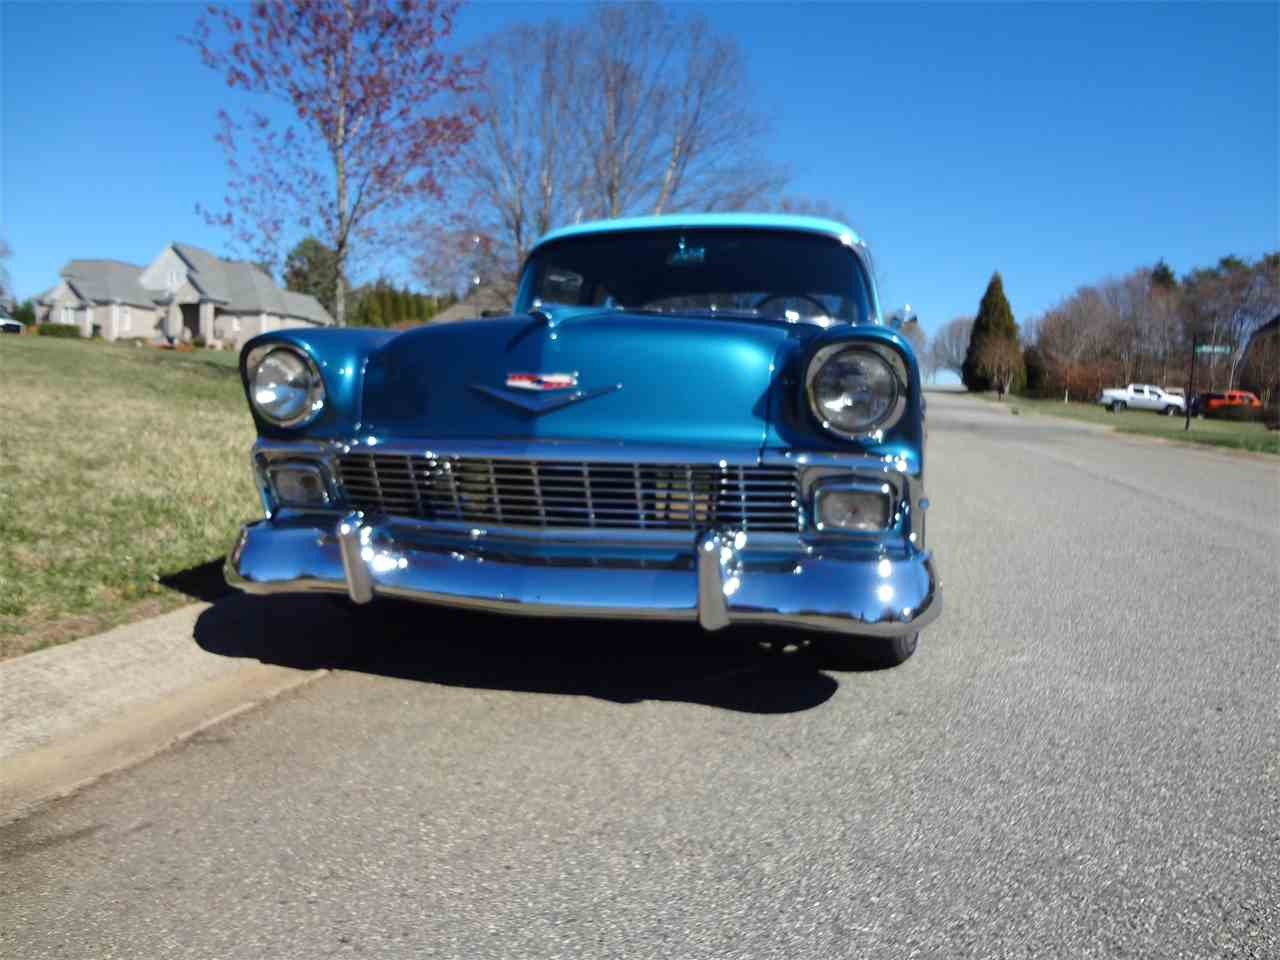 1956 chevrolet bel air for sale classic car liquidators - 1956 Chevrolet Bel Air For Sale Cc 591274